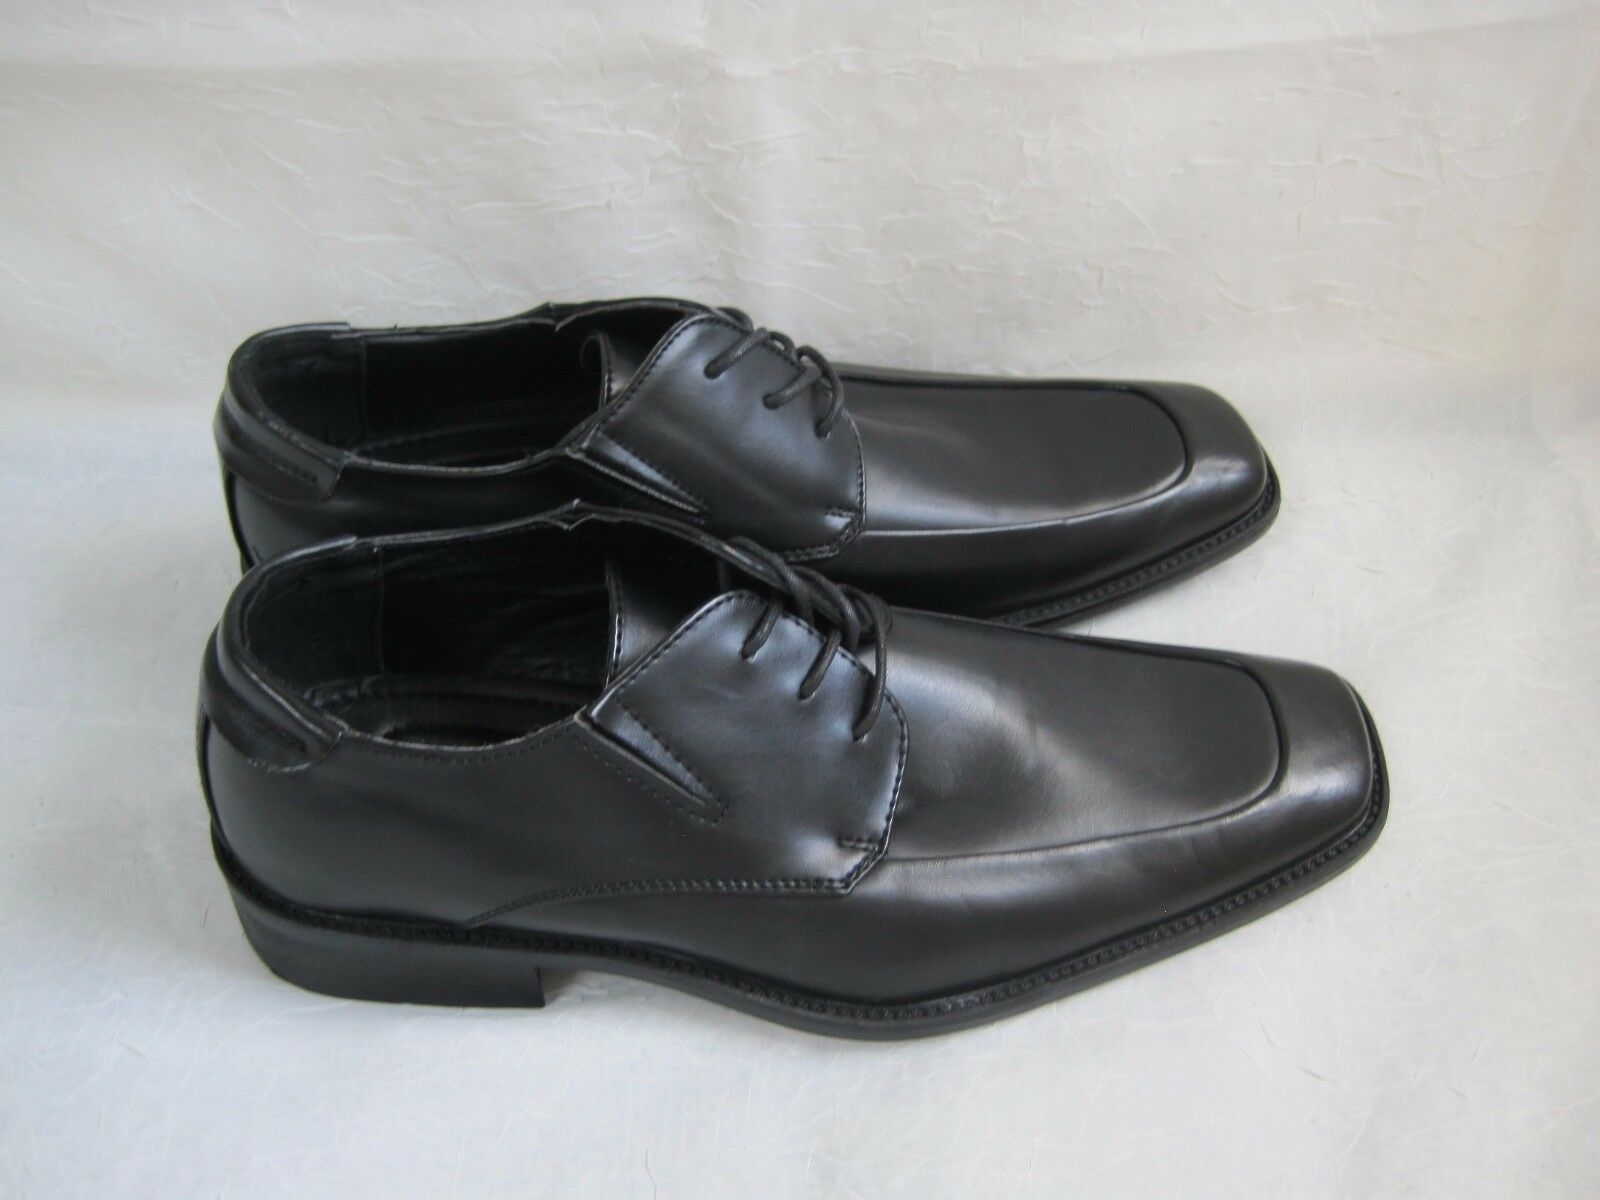 New! Mens SM New York 66283 Klik Dress Shoes Style 66283 York Size 8 Black  20F 1d54c0